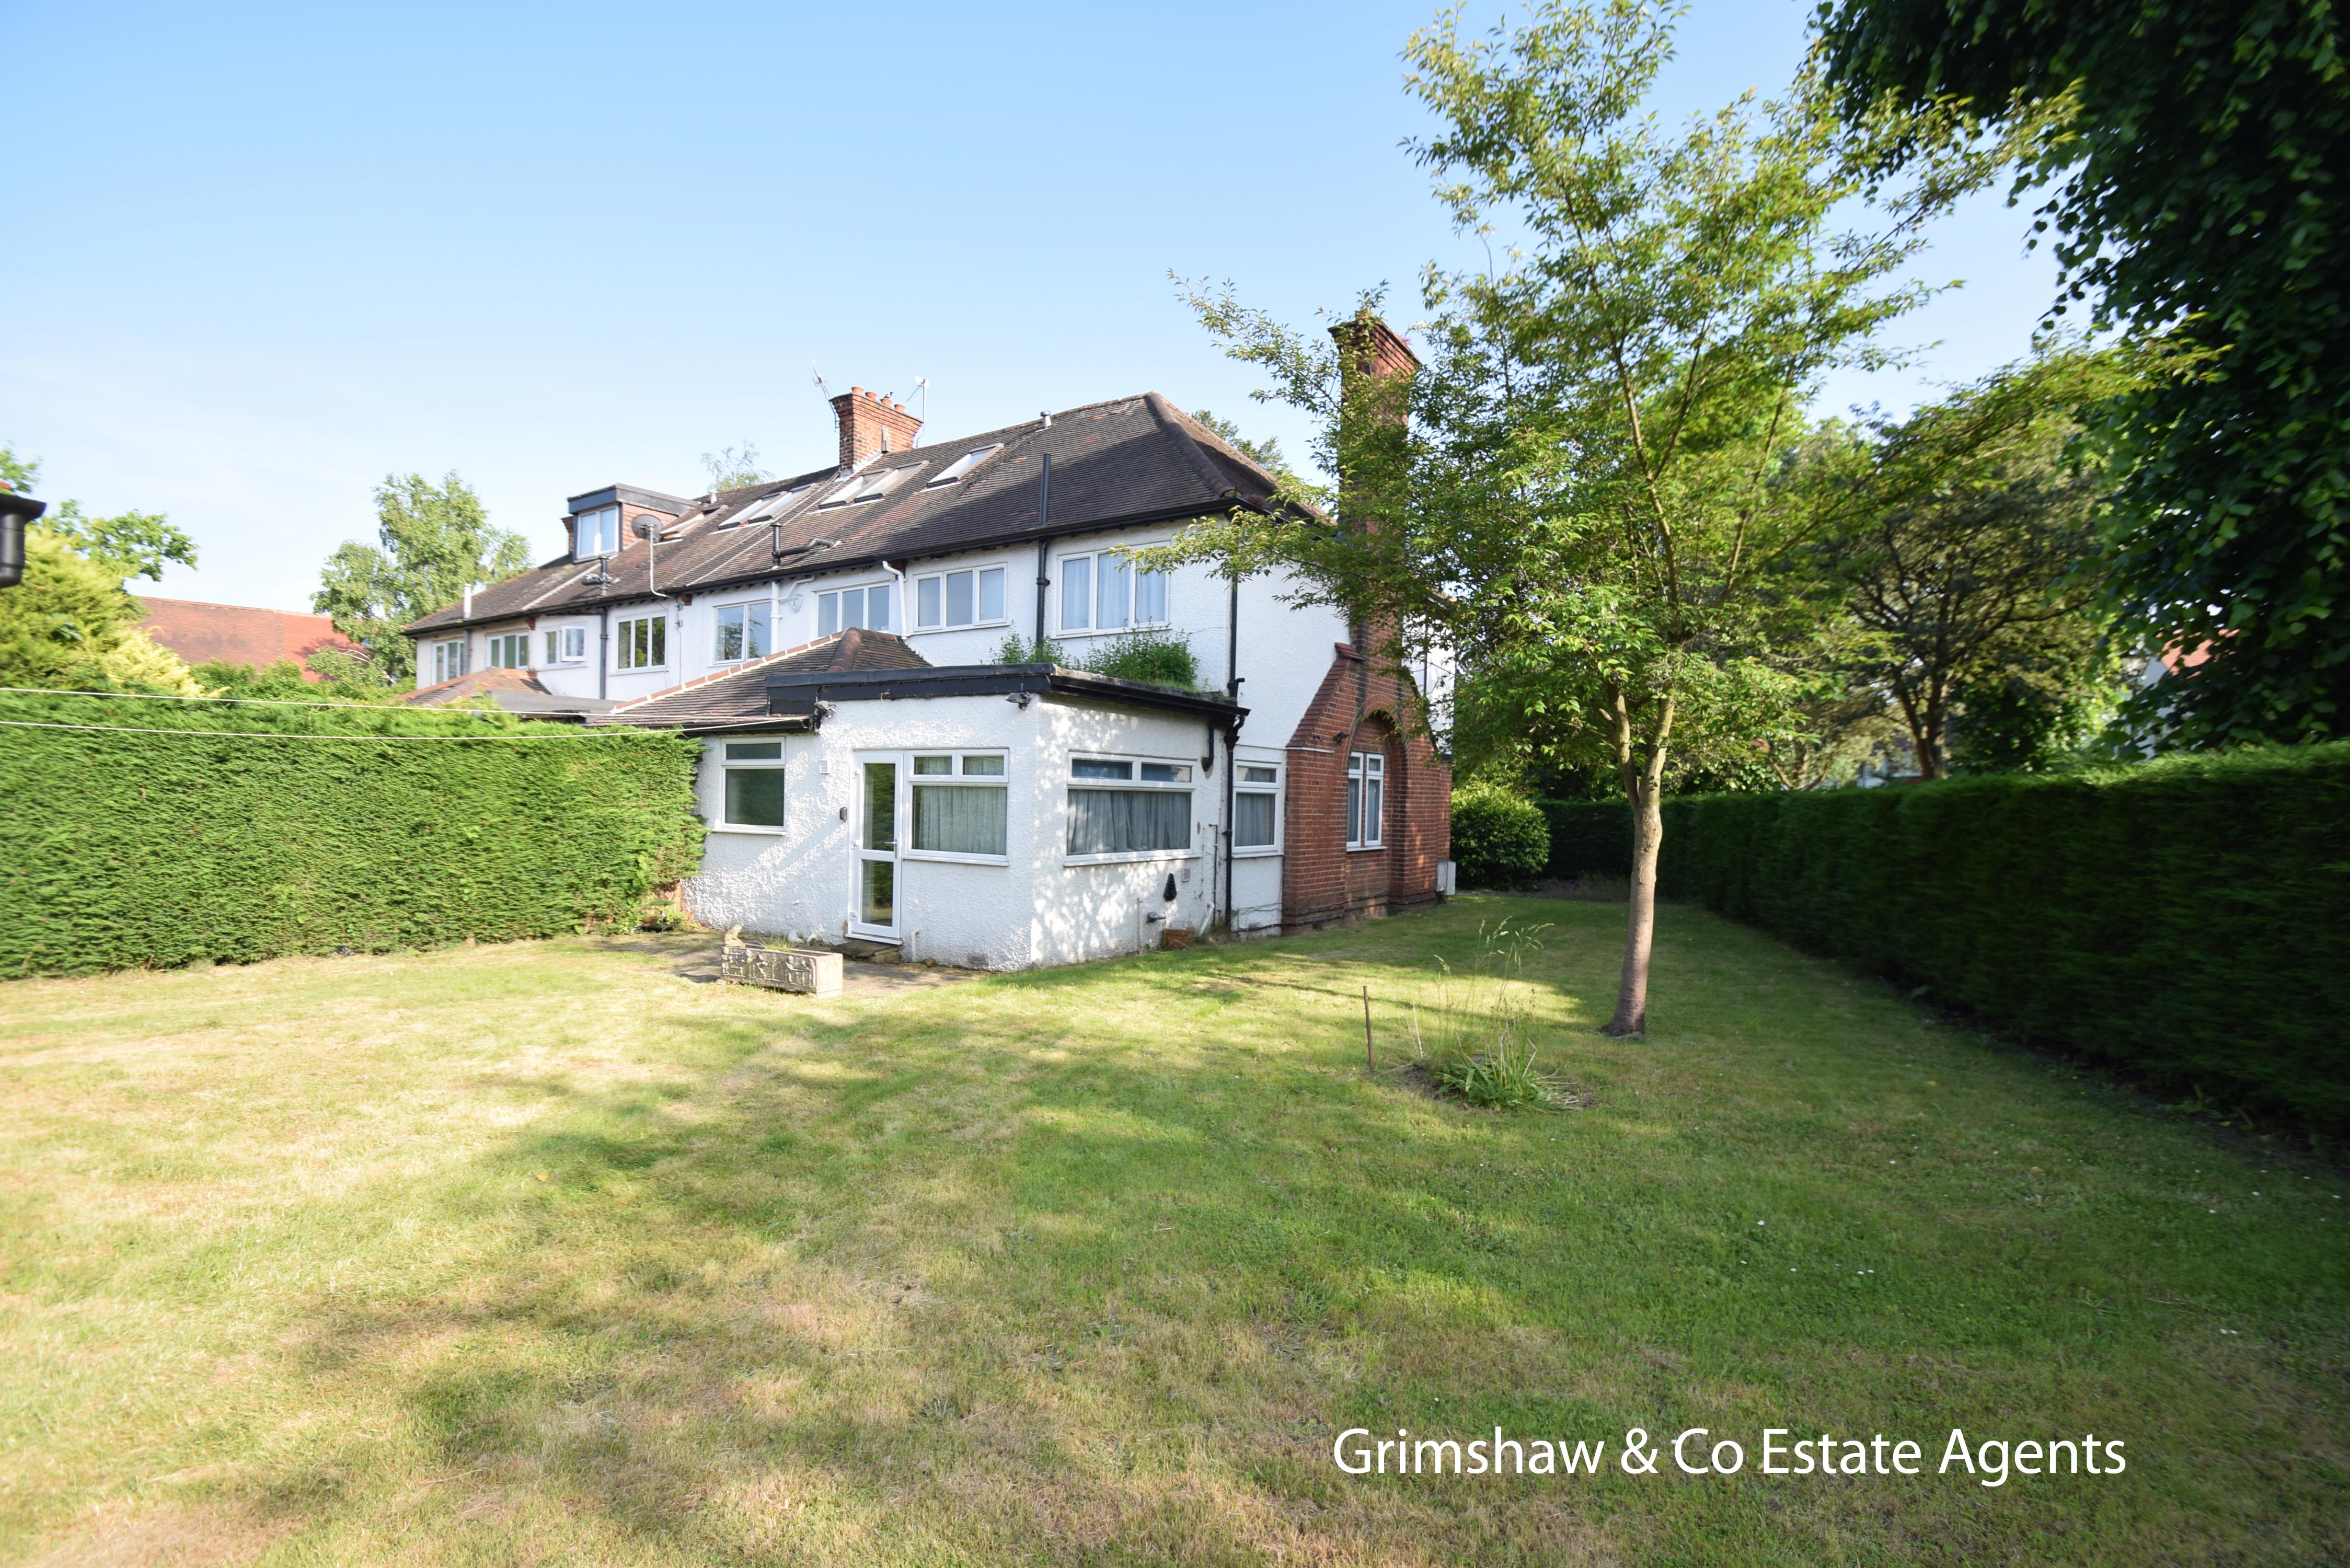 Sold - Park Drive, Gunnersbury Triangle